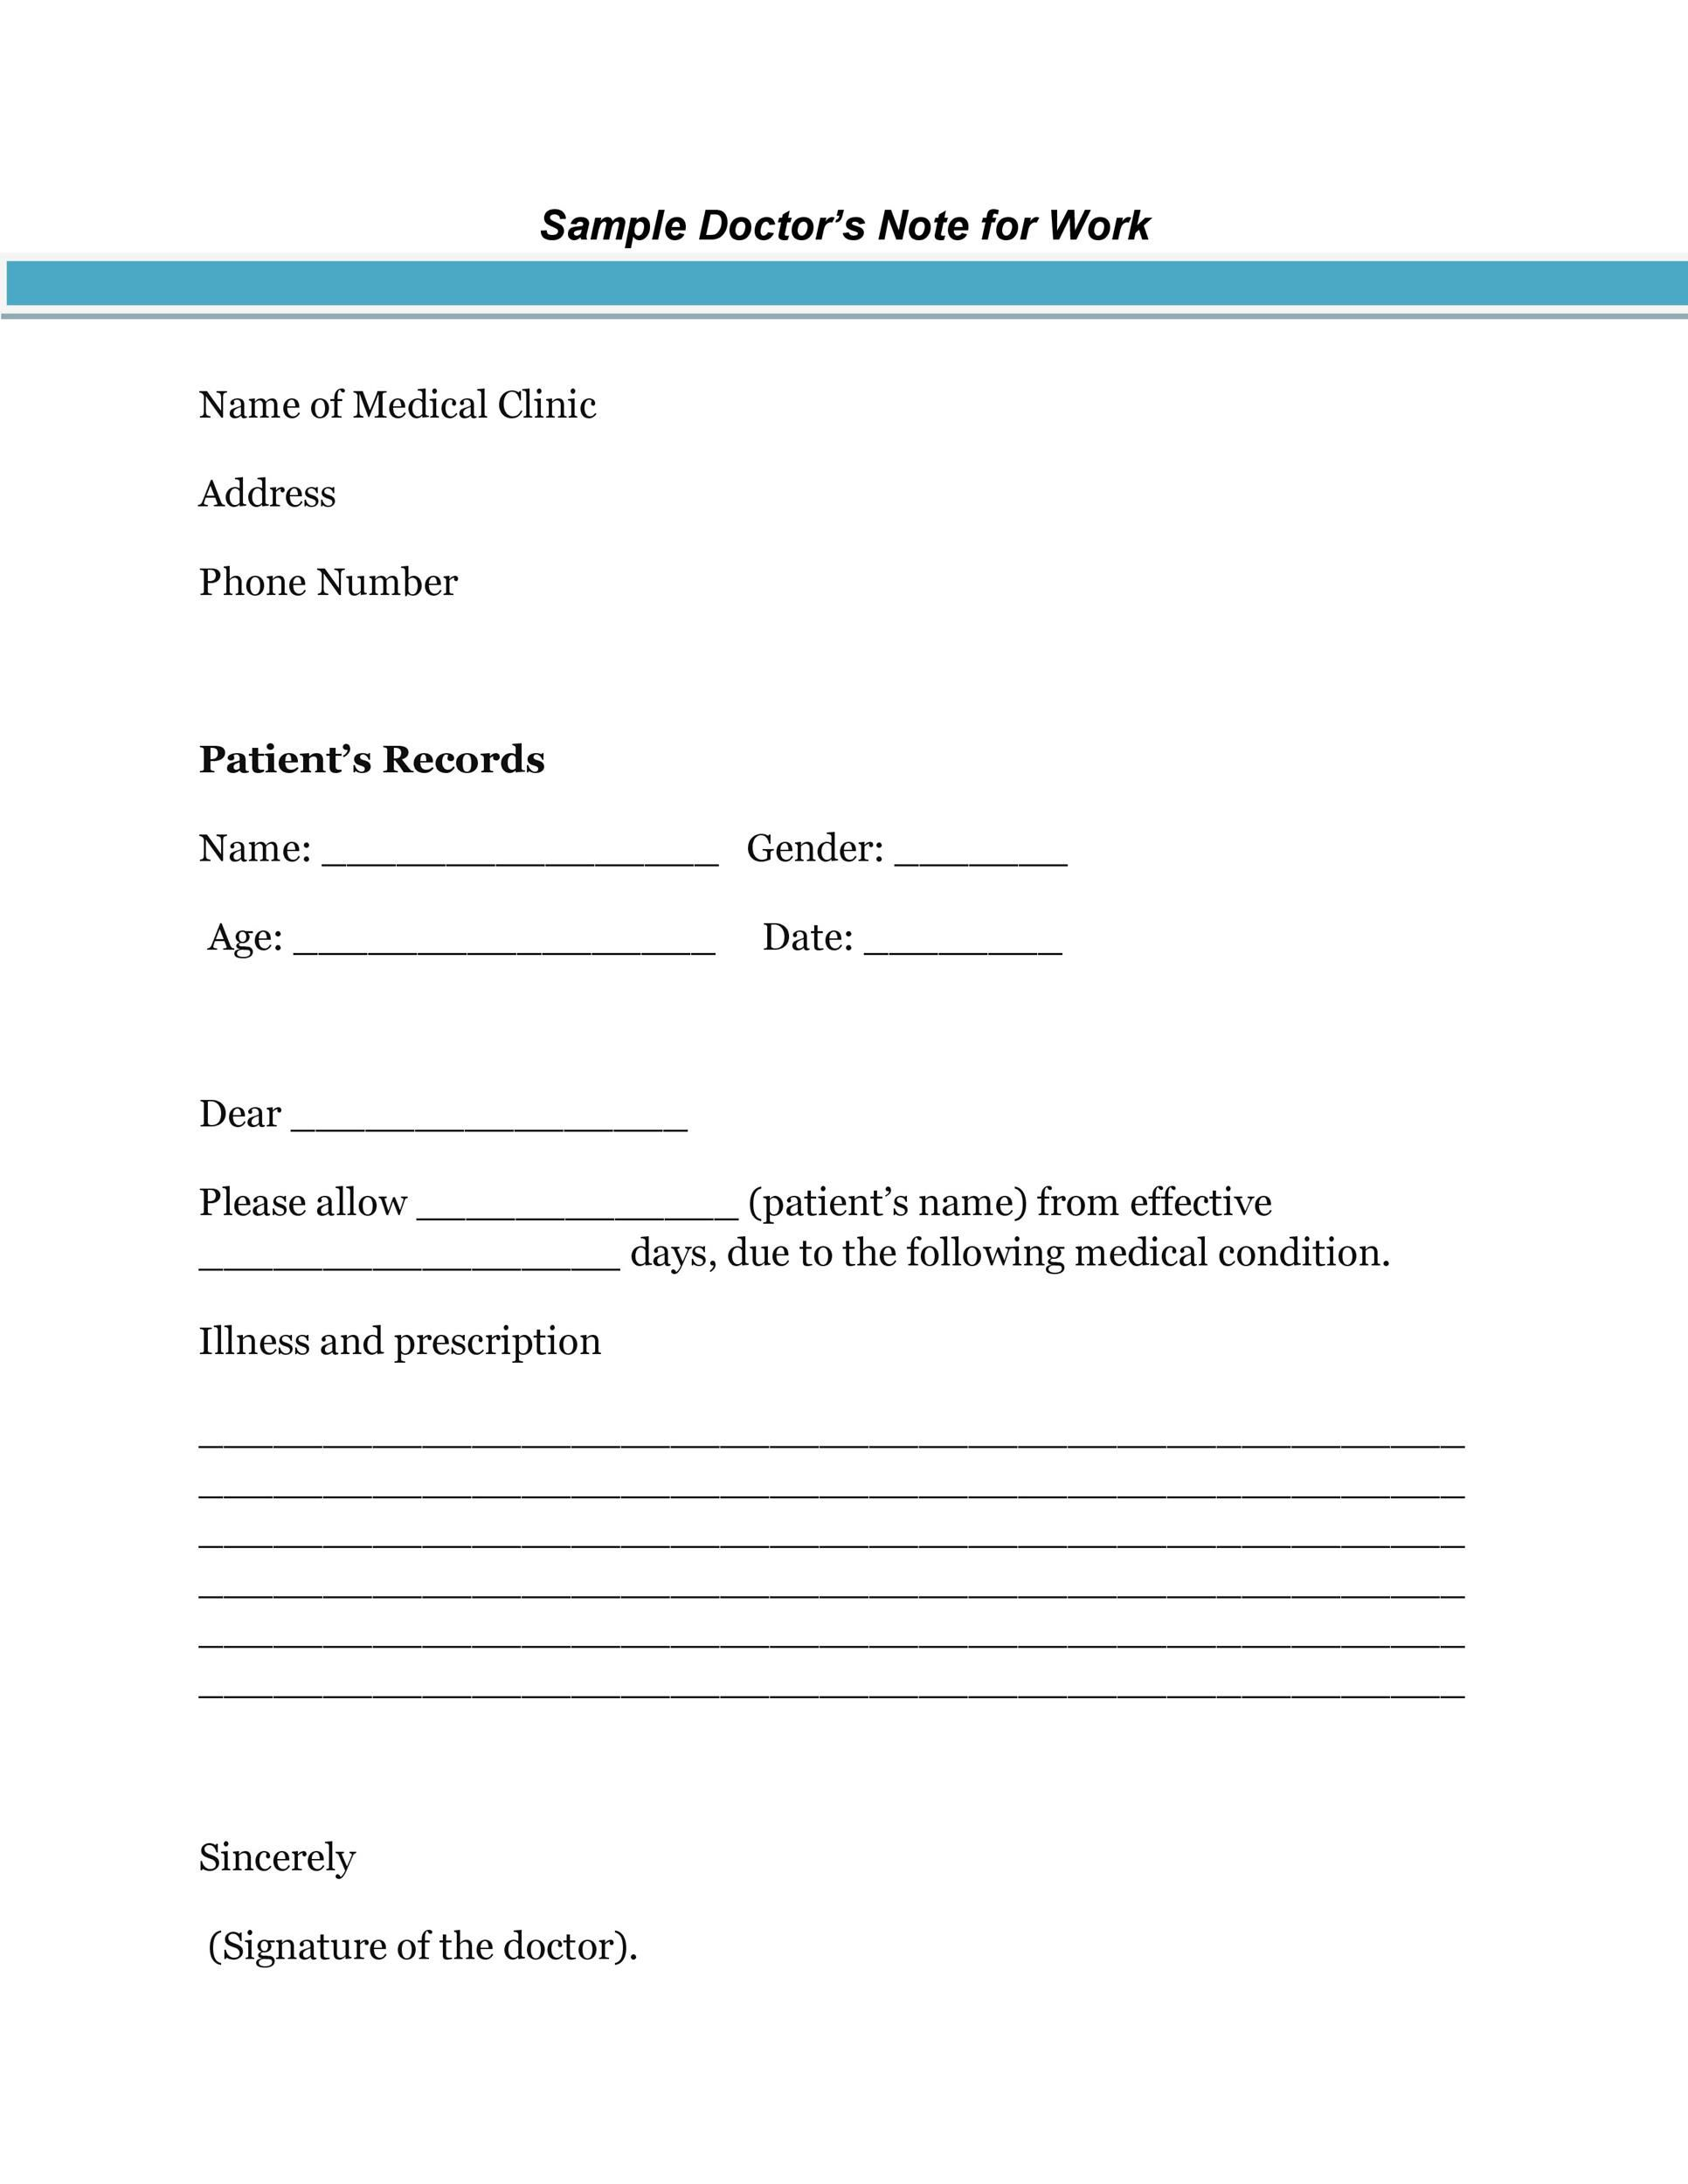 004 Staggering Dr Note Template For Work Image  Fake Doctor FreeFull